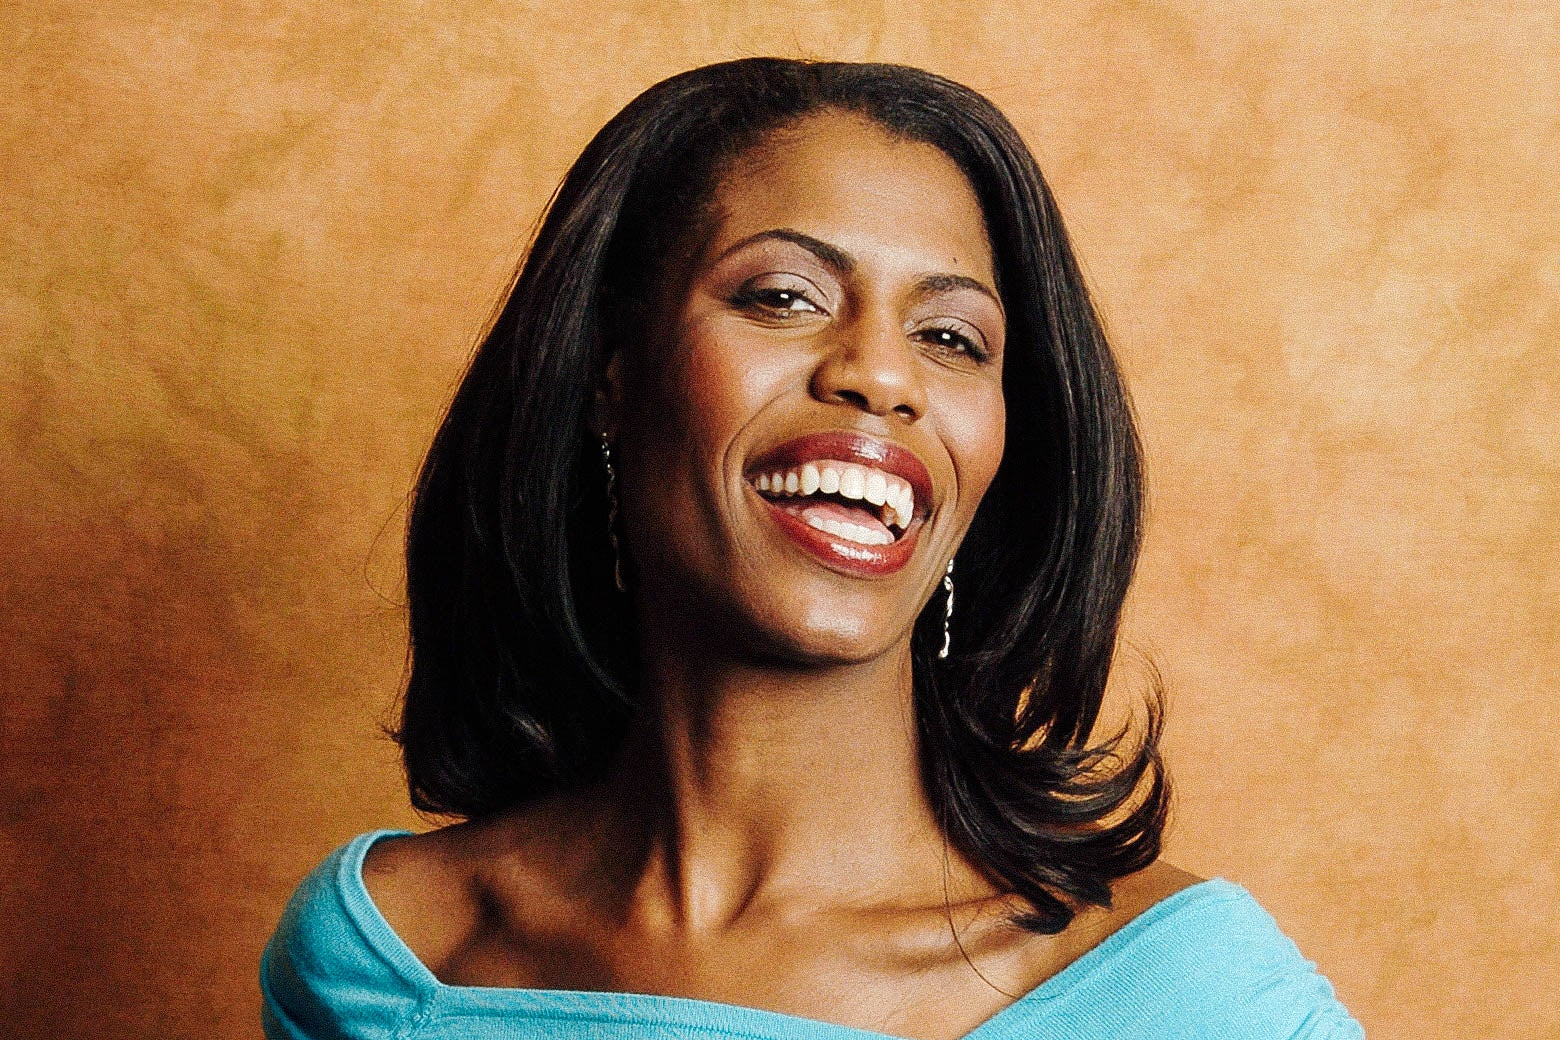 Omarosa smiling broadly.